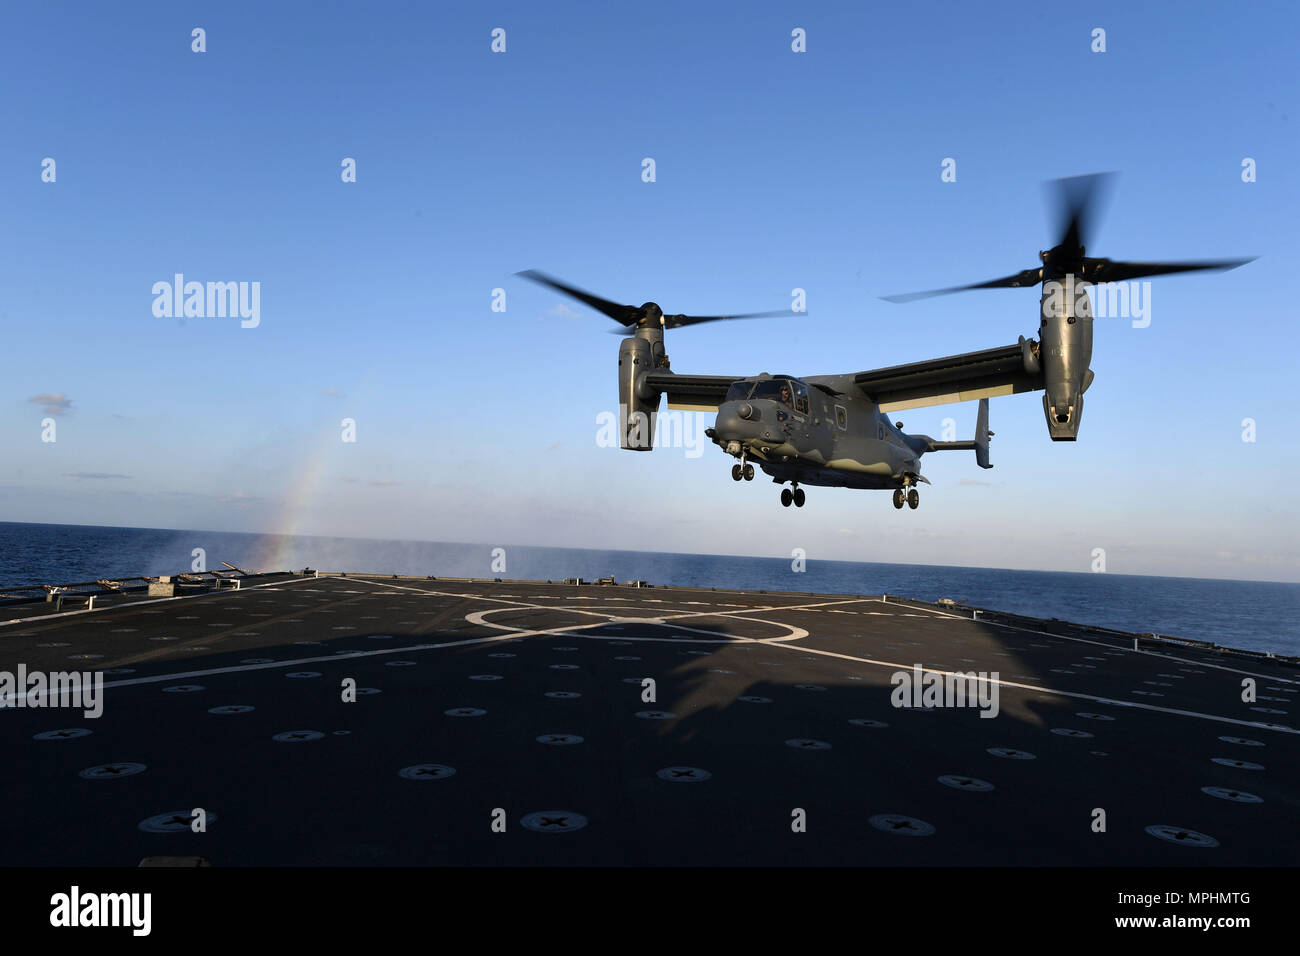 170313-N-ME988-969 MEDITERRANEAN SEA (March 13, 2017) A CV-22 Osprey assigned to Special Operations Command Europe  approaches the flight deck of the amphibious dock landing ship USS Carter Hall (LSD 50) during deck landing qualifications, March 13, 2017. The ship is deployed with the Bataan Amphibious Ready Group to support maritime security operations and theater security cooperation efforts in the U.S. 6th Fleet area of operations. (U.S. Navy photo by Mass Communication Specialist 1st Class Darren M. Moore/Released) Stock Photo